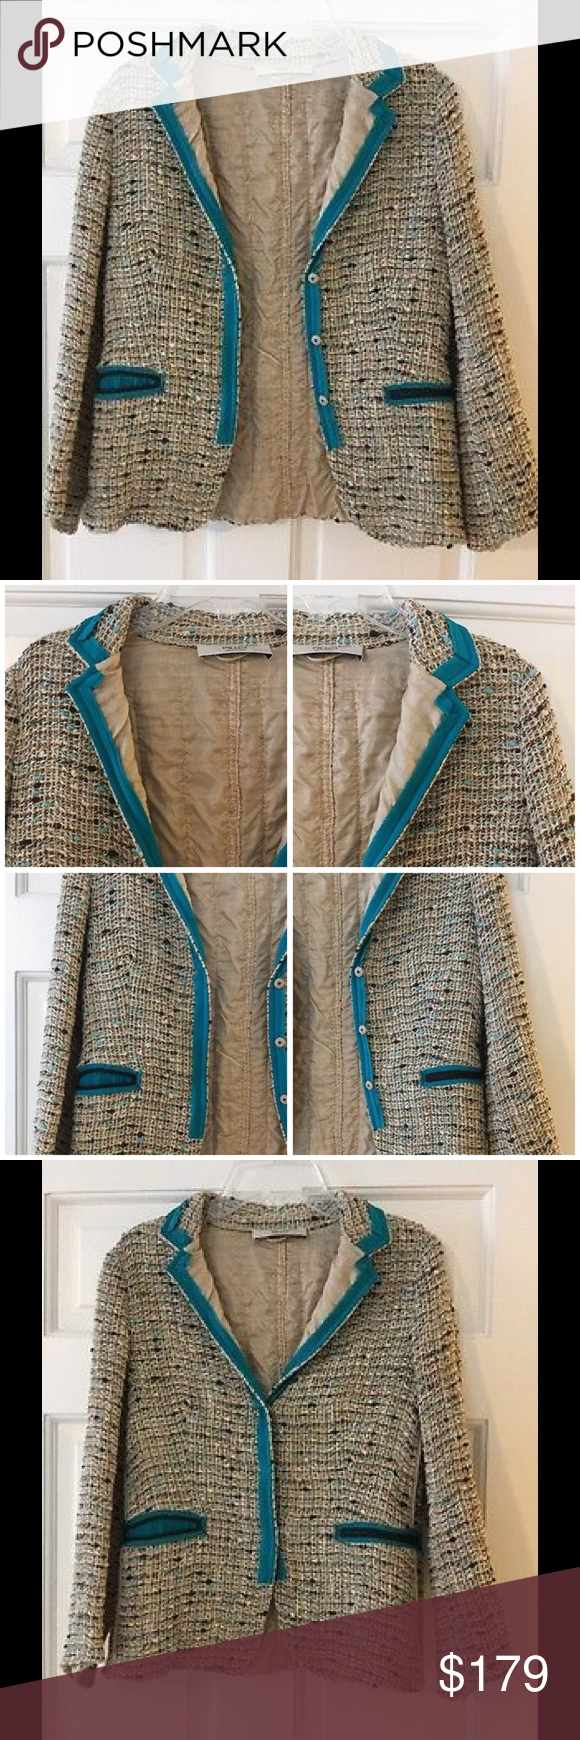 """✳️SALE✳️ Prada Boucle tweed jacket IT 44 US 8 10 There is nothing basic about this gorgeous Prada jacket! Brown and turquoise details set off the beige Boucle. Three snap close. Cotton/wool/linen with silk lining. Italian size 44 converts to a US 8 or 10. Underarm across 17"""". Length 22"""". Excellent condition (EUC). Prada Jackets & Coats Blazers"""